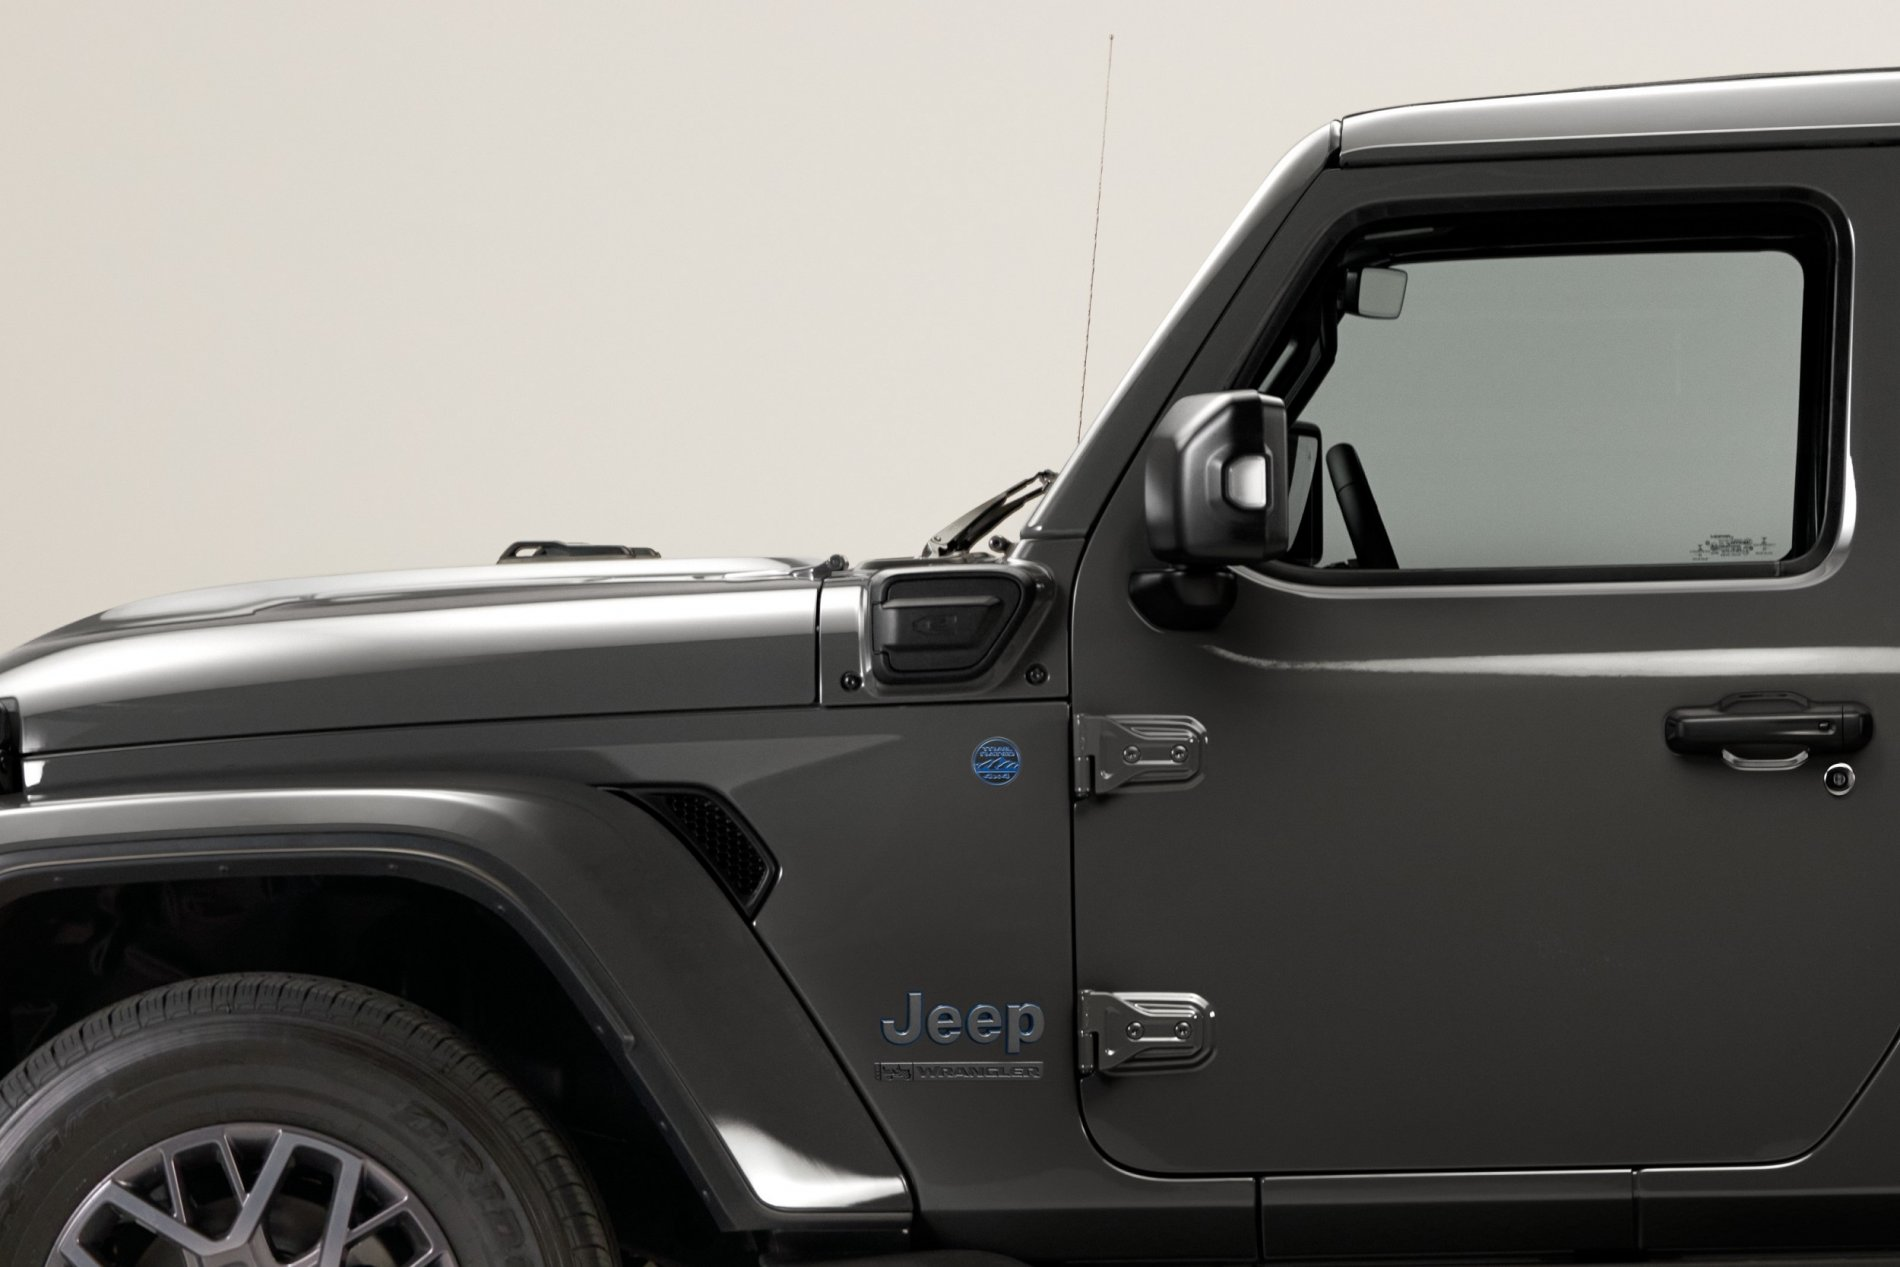 Jeep-Wrangler-4xe-First-Edition_side.jpg